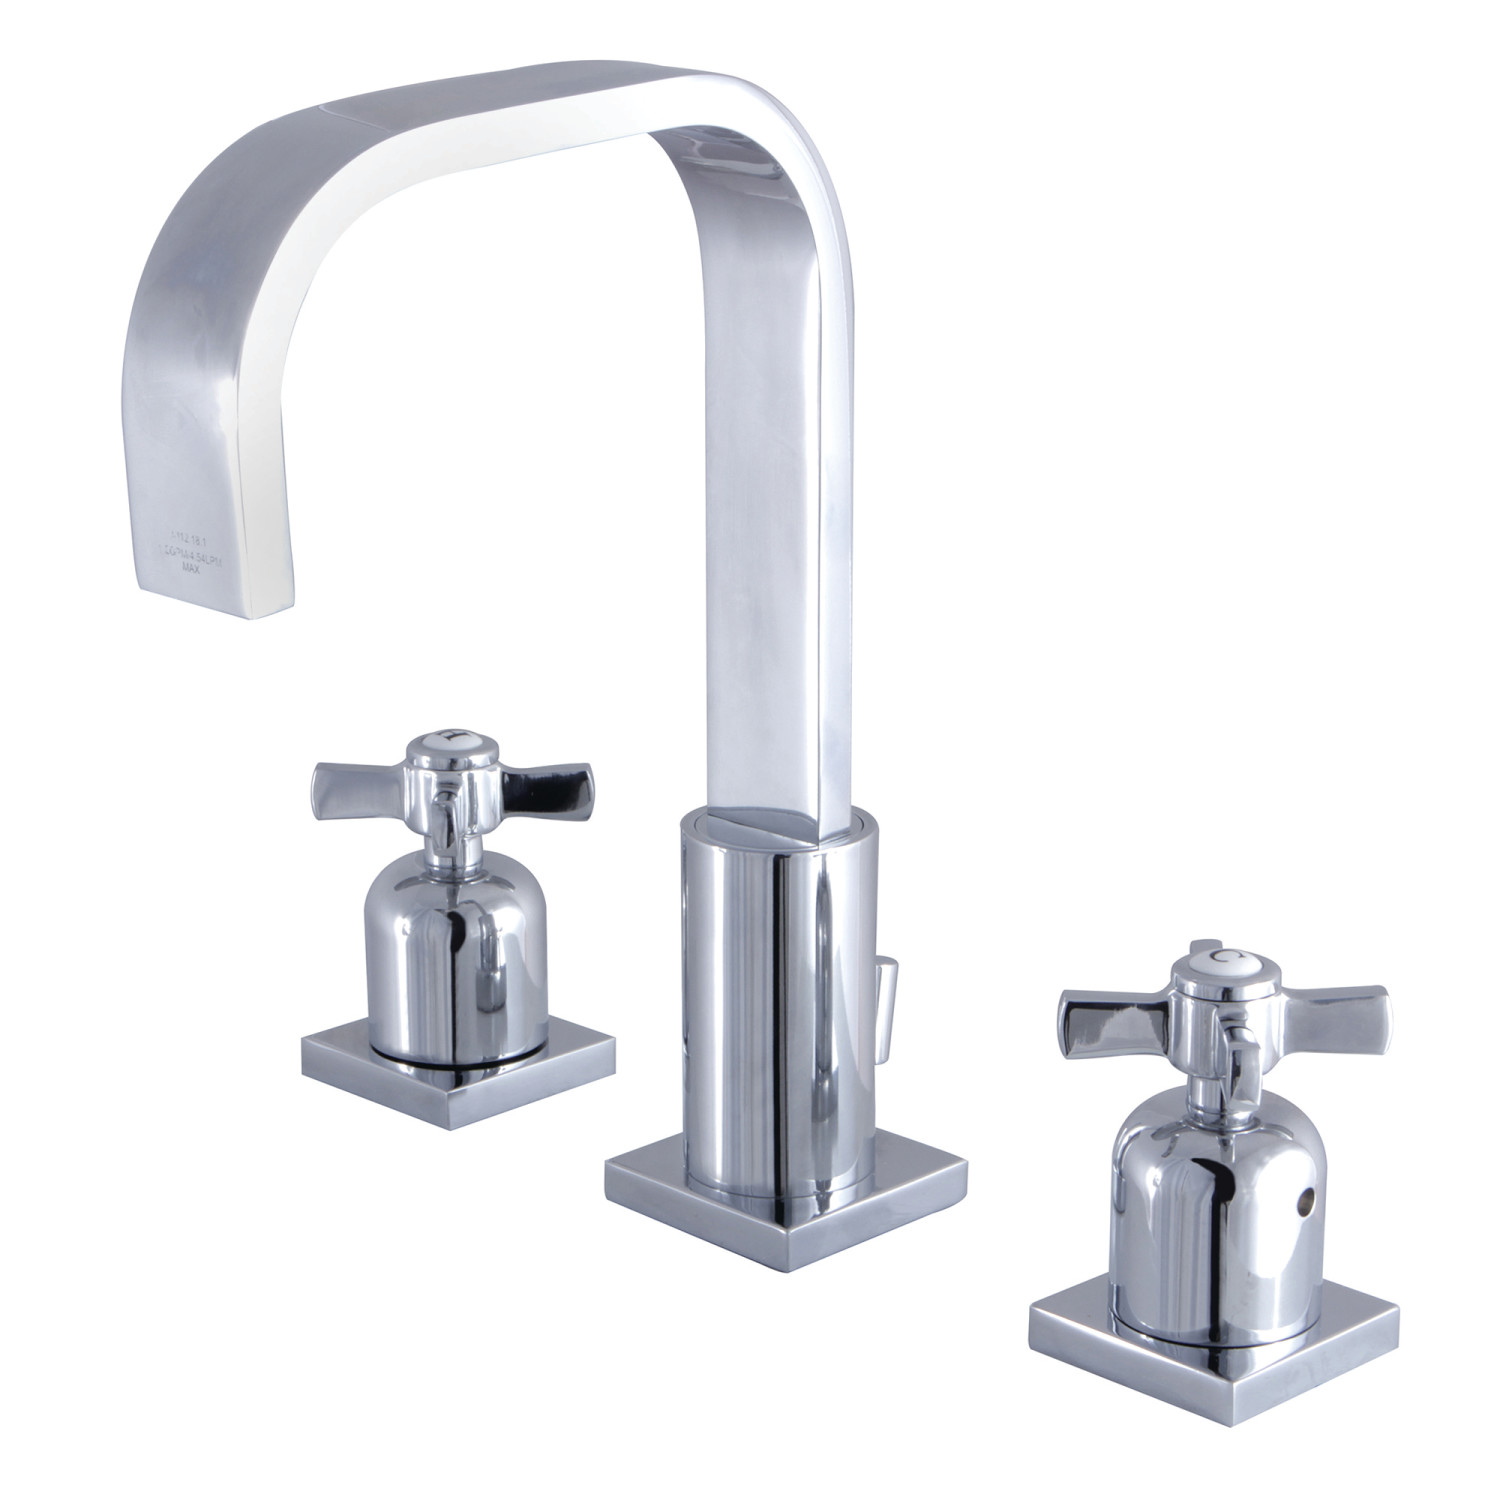 Modern 2-Handle 3-Hole Deck Mounted Widespread Bathroom Faucet with Plastic Pop-Up in Polished Chrome with 3 Color Options